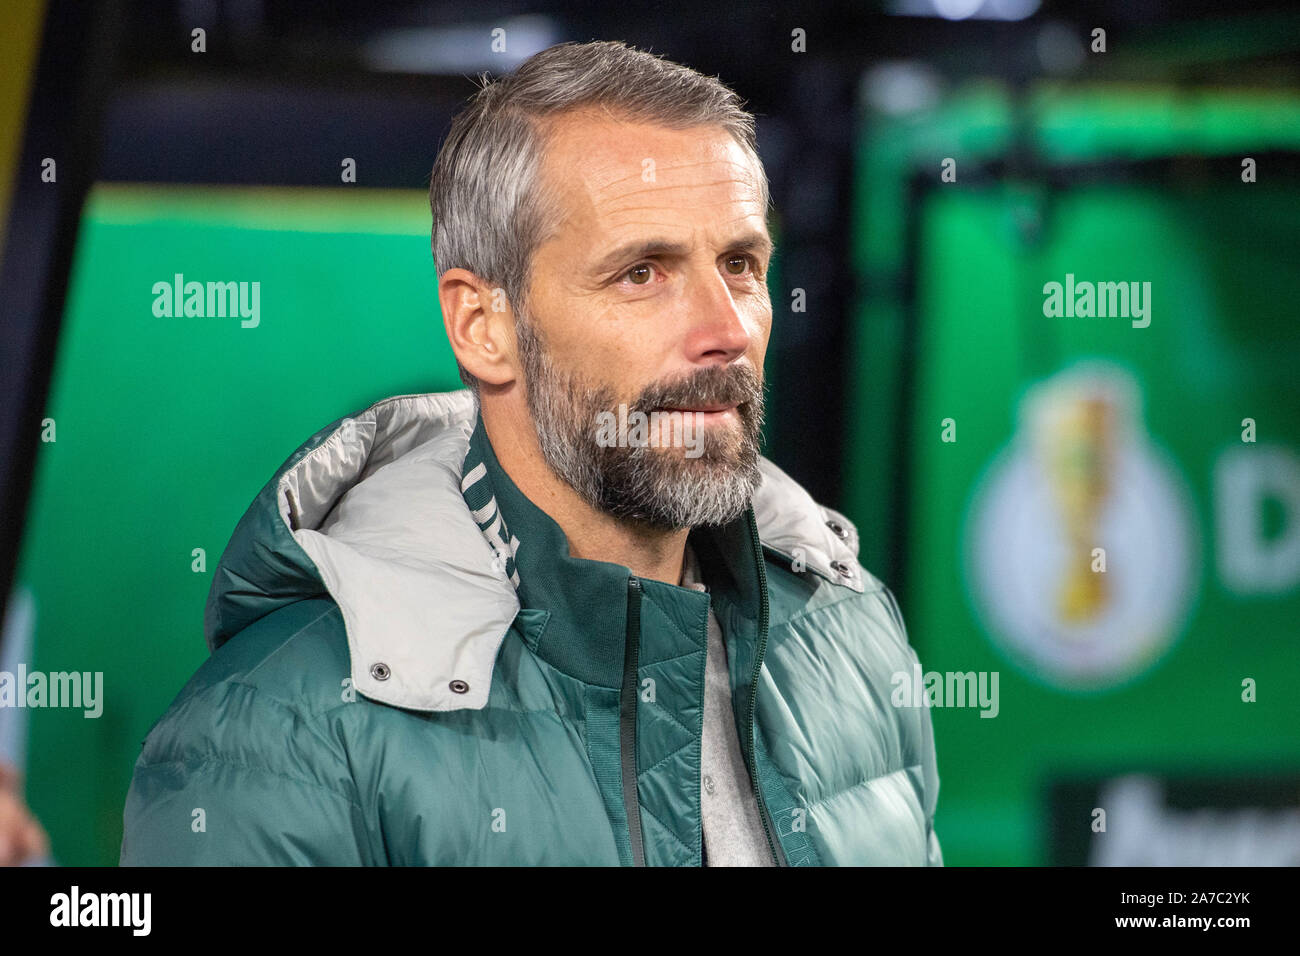 coach Marco ROSE (MG), half-length, football, DFB Pokal, 2nd round, Borussia Dortmund (DO) - Borussia Monchengladbach (MG) 2: 1, on 30.10.2019 in Dortmund/Germany. | Usage worldwide Stock Photo